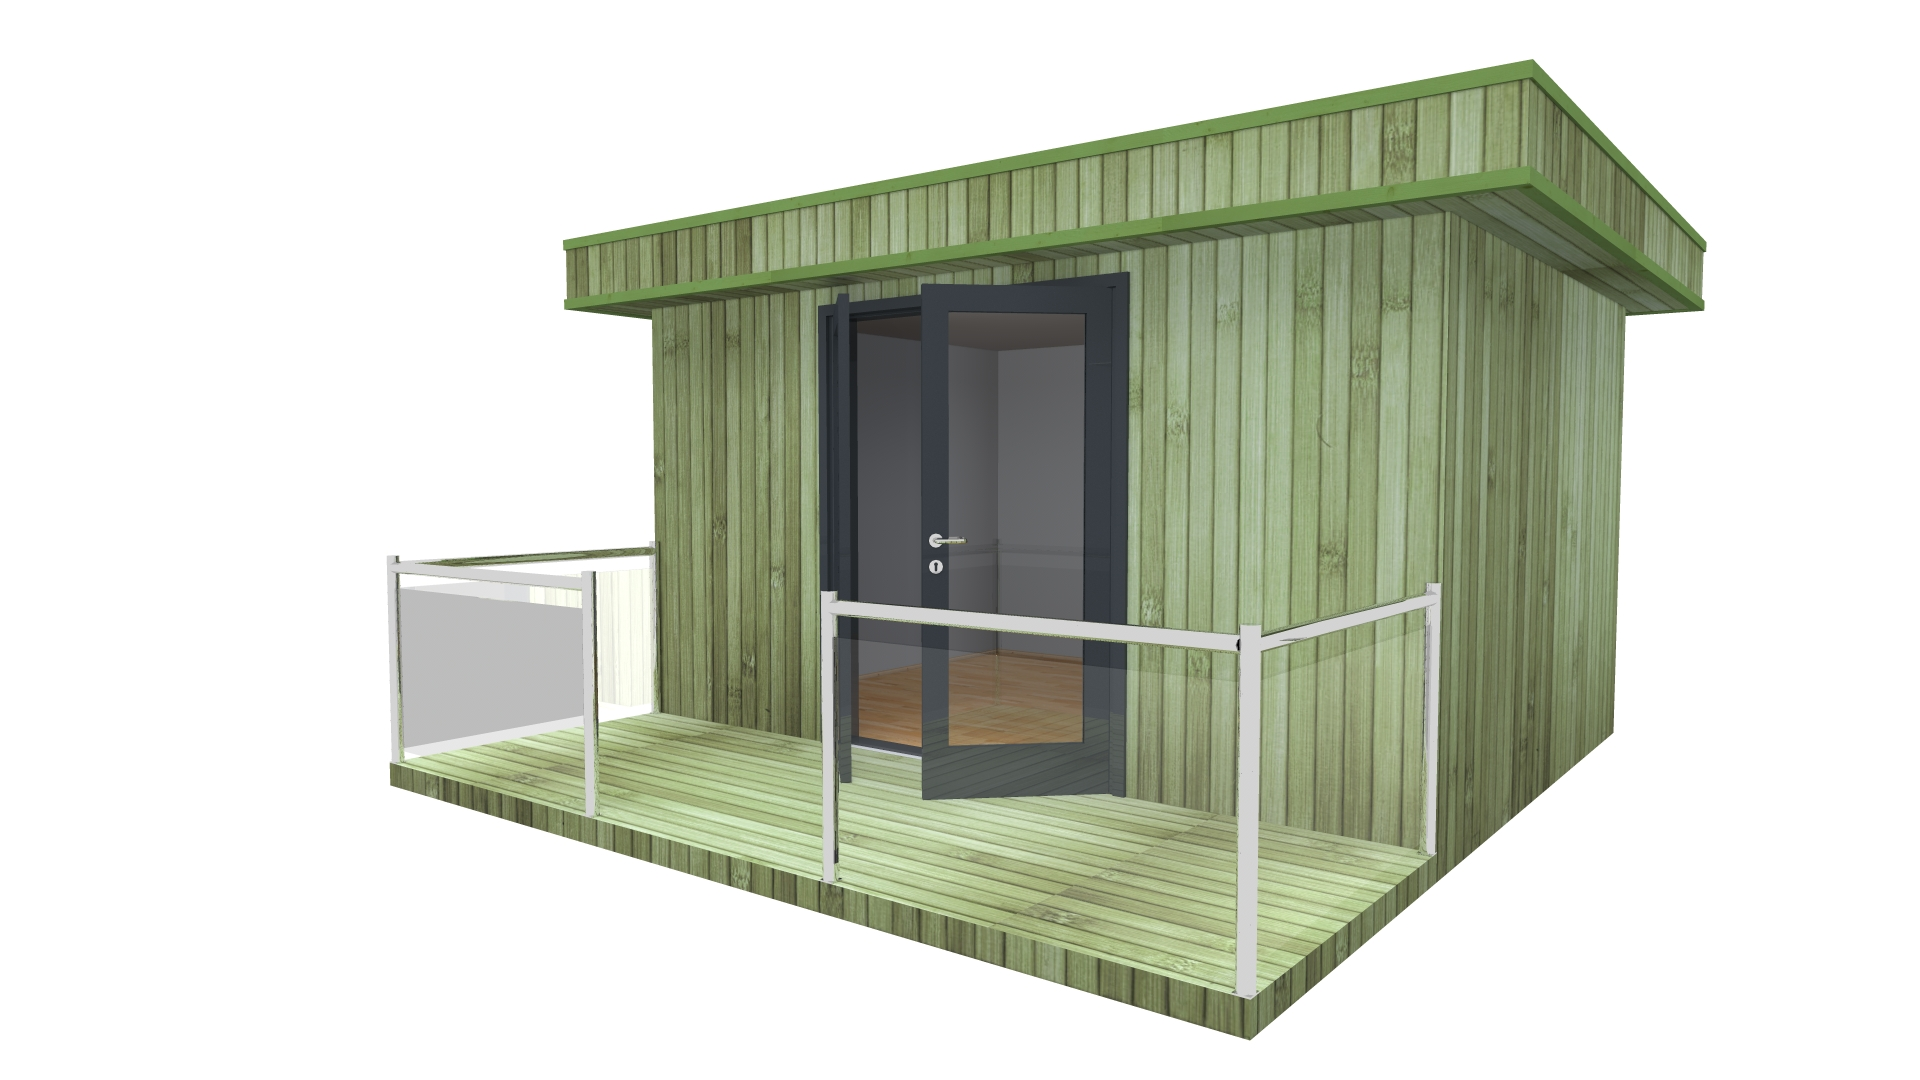 Biuras Modern Office 4x3